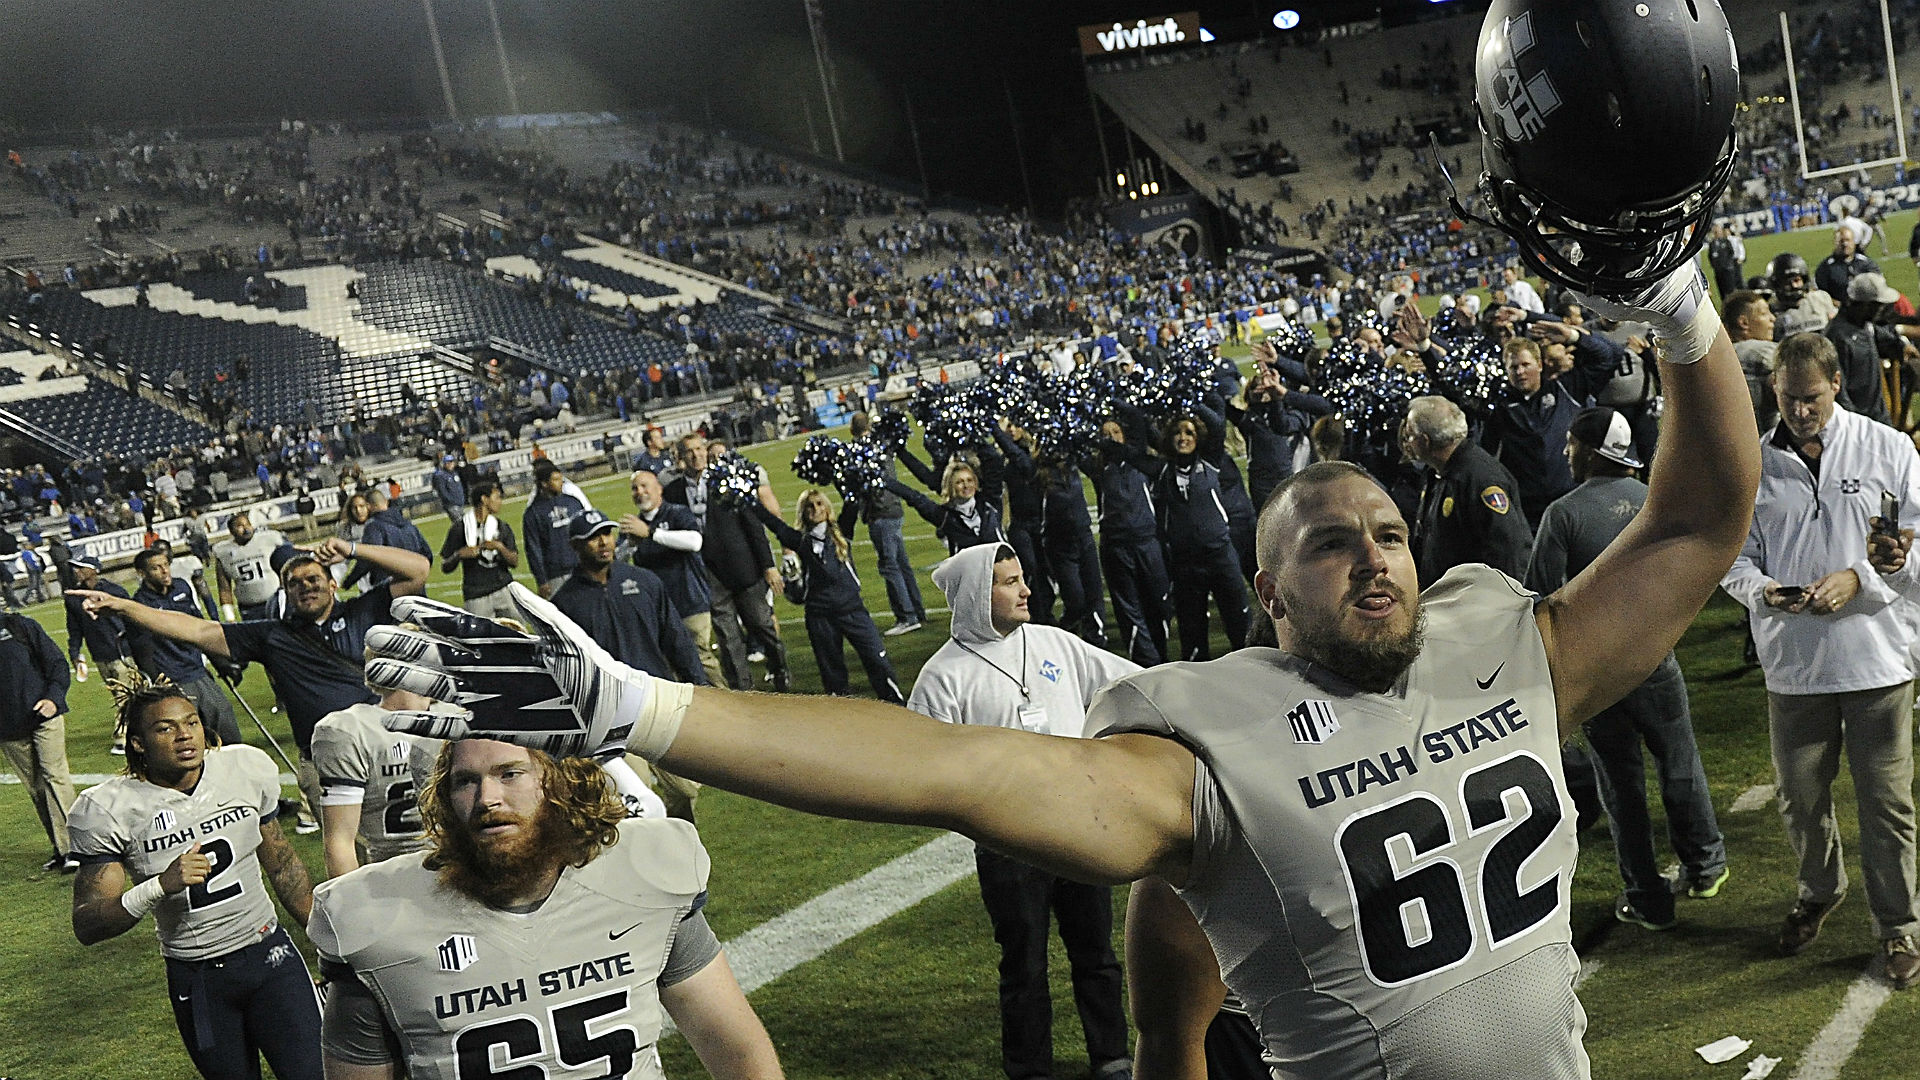 San Jose State vs. Utah State betting preview and pick – Value on the dog?